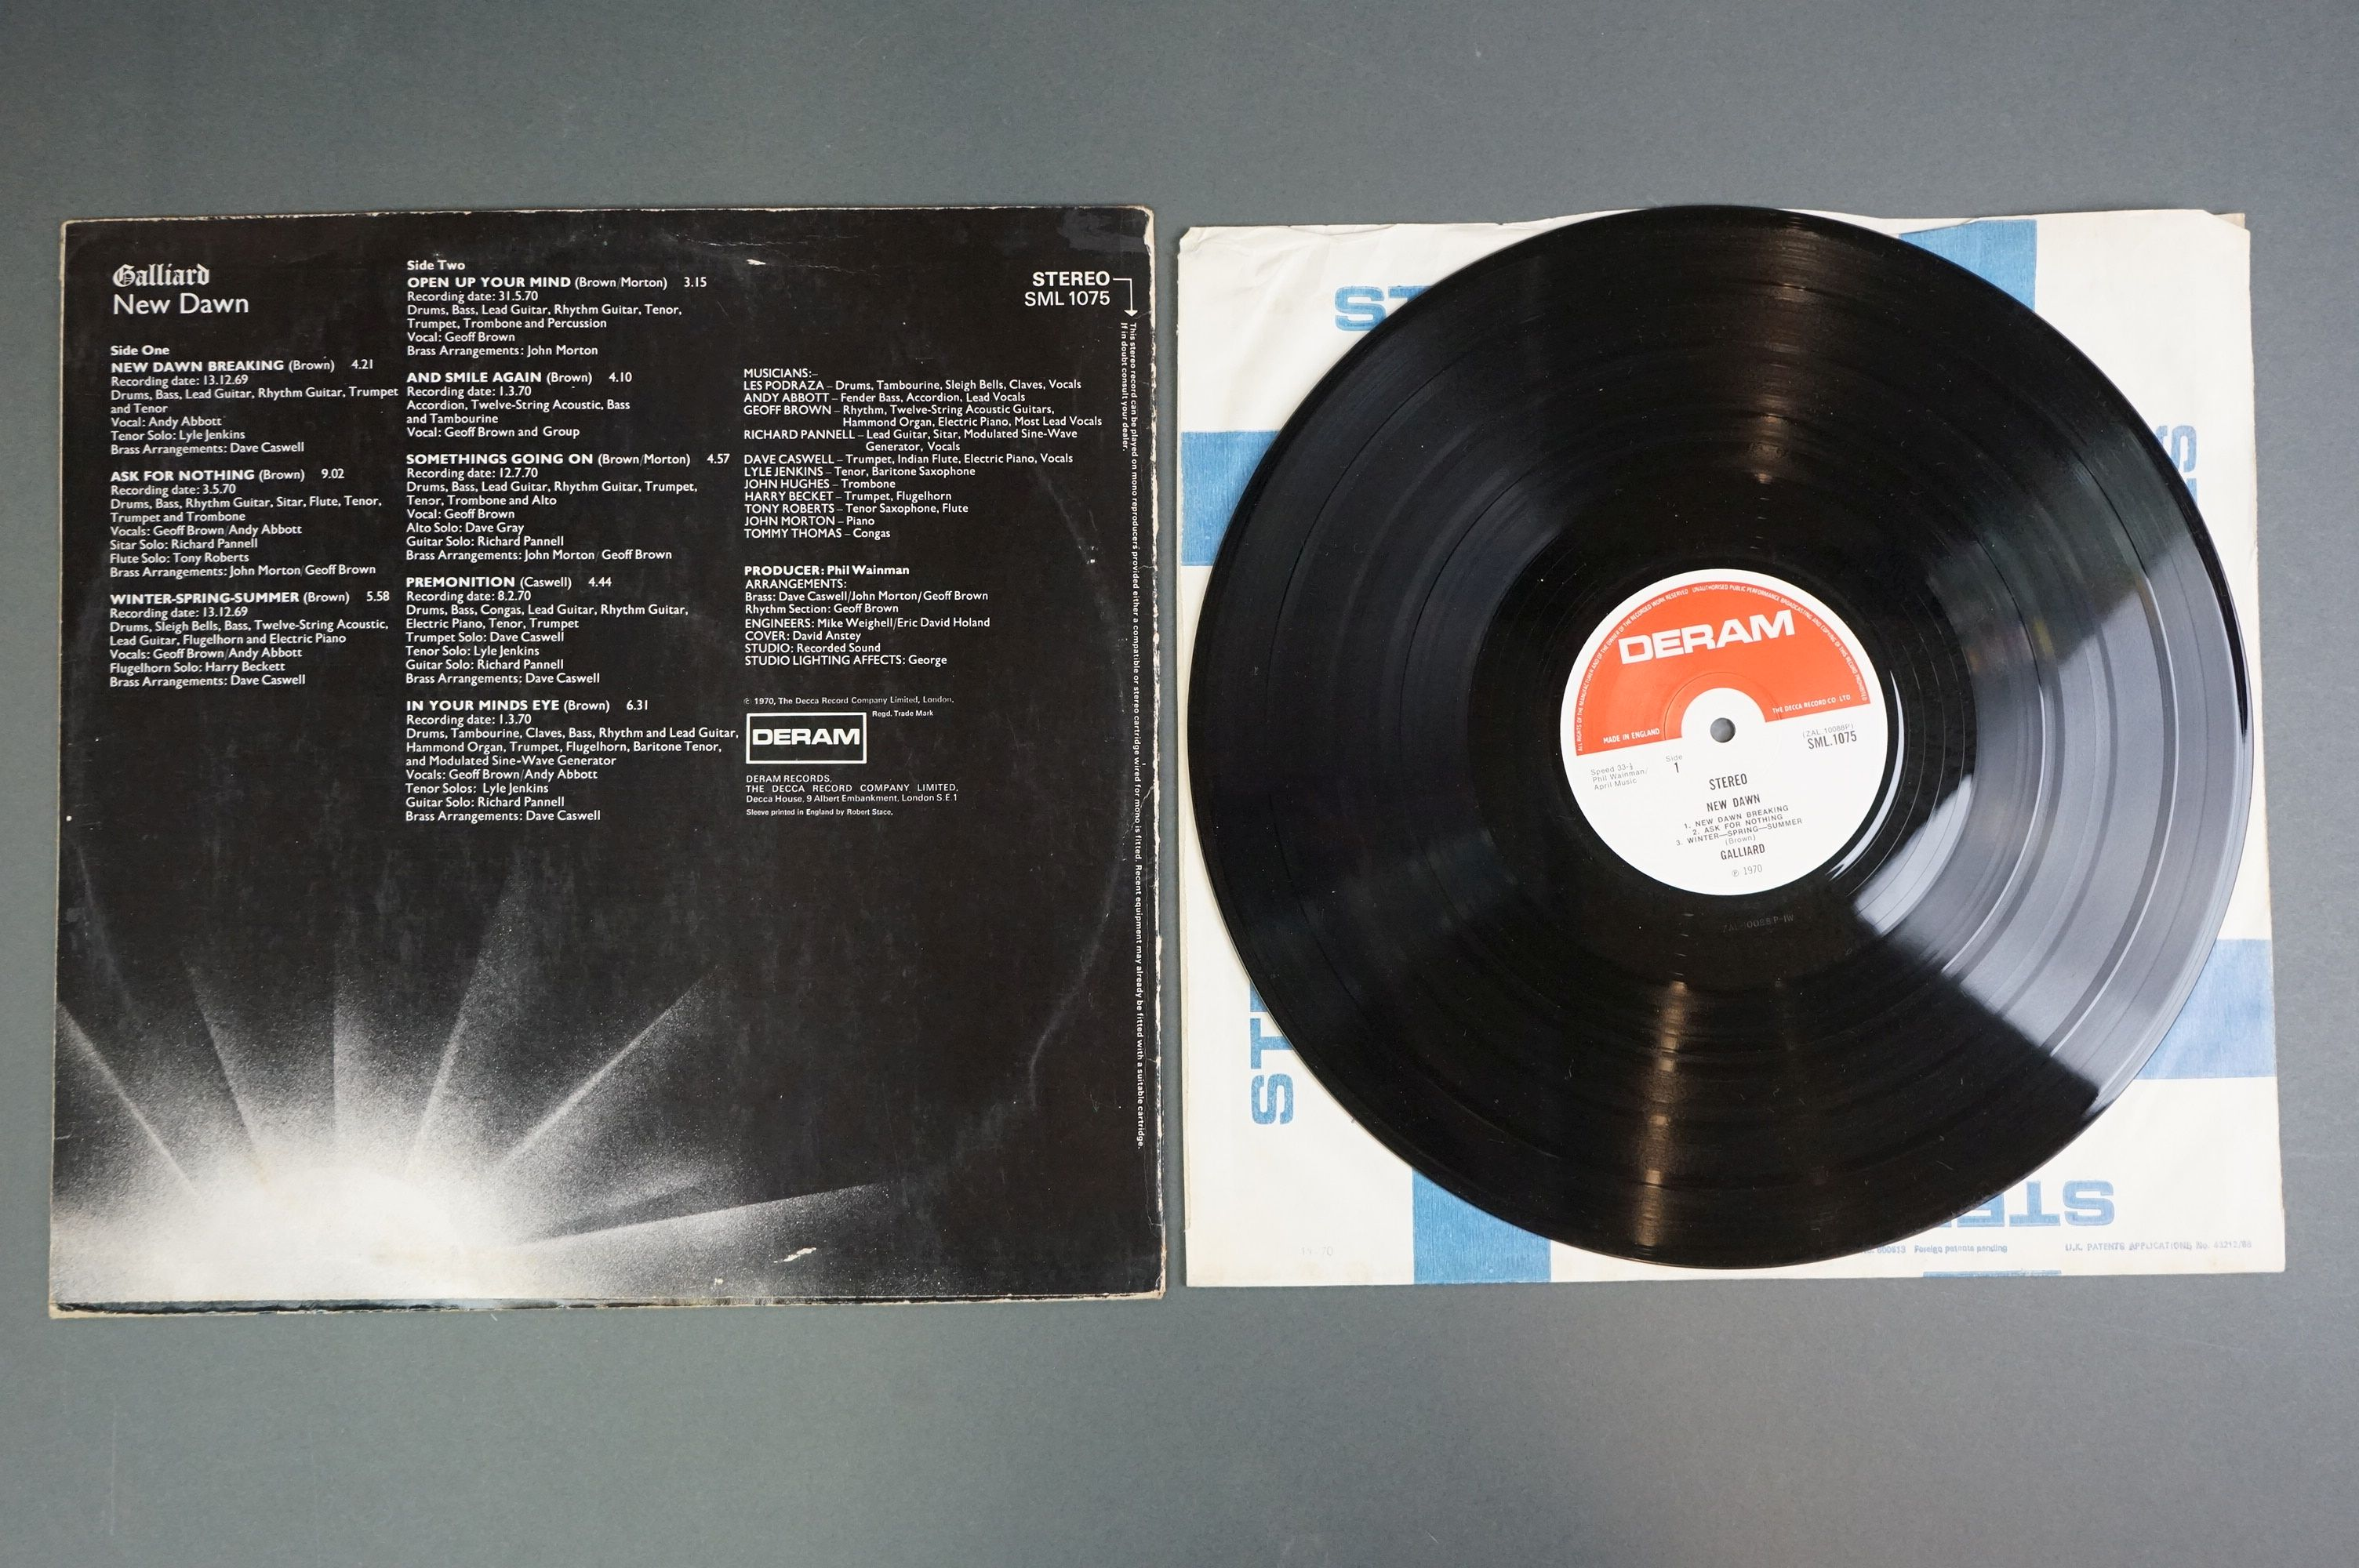 Vinyl - Galliard New Dawn SML1075 LP with red and white Deram label, small logo, sleeve vg- with - Image 3 of 3